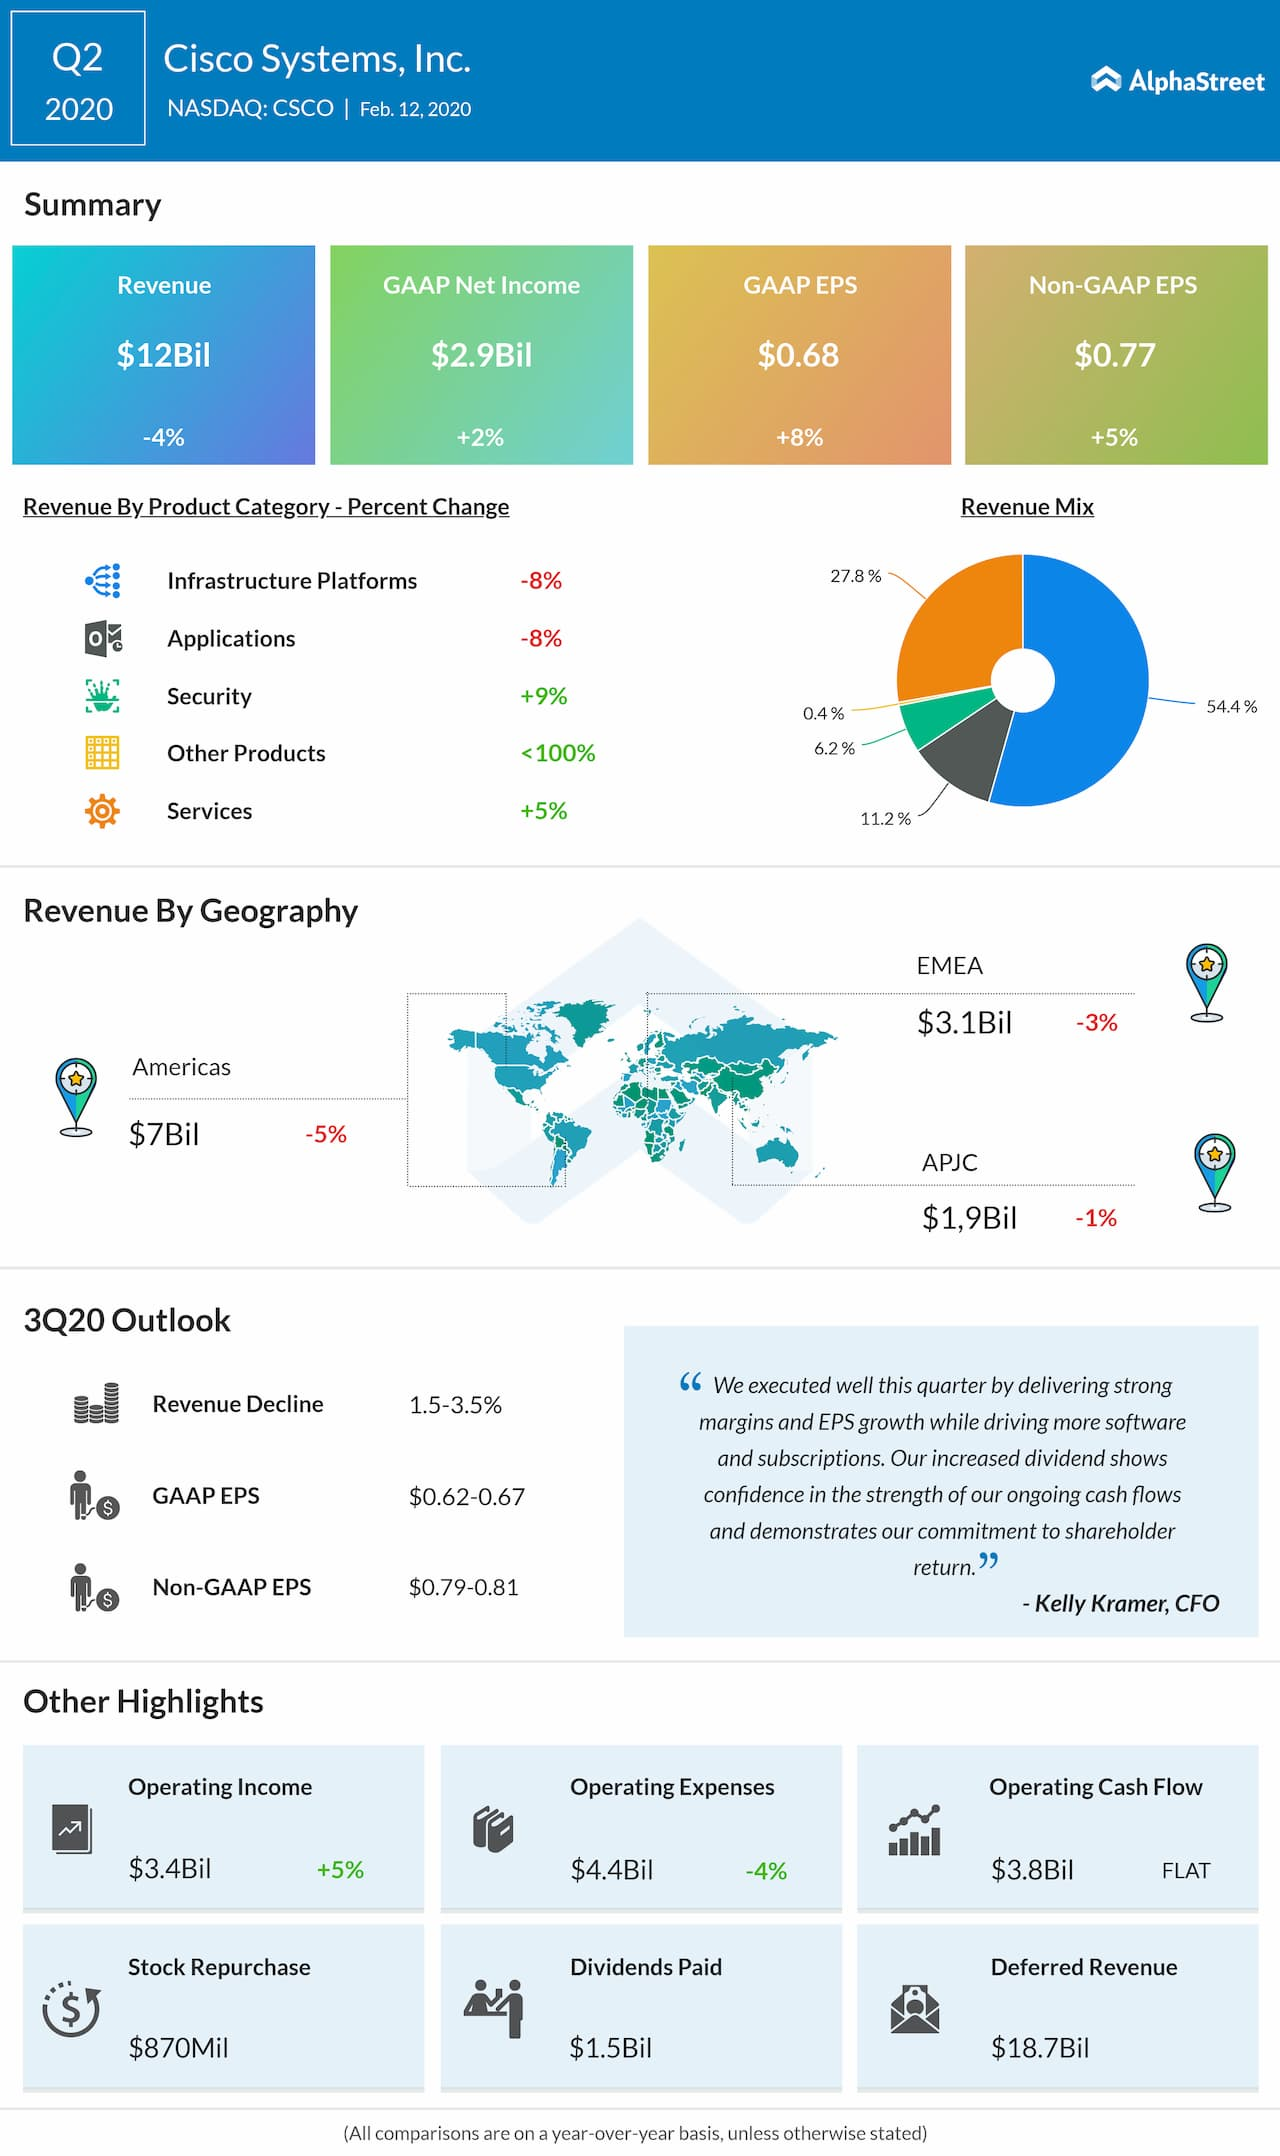 Cisco Systems (CSCO) Q2 2020 Earnings Review